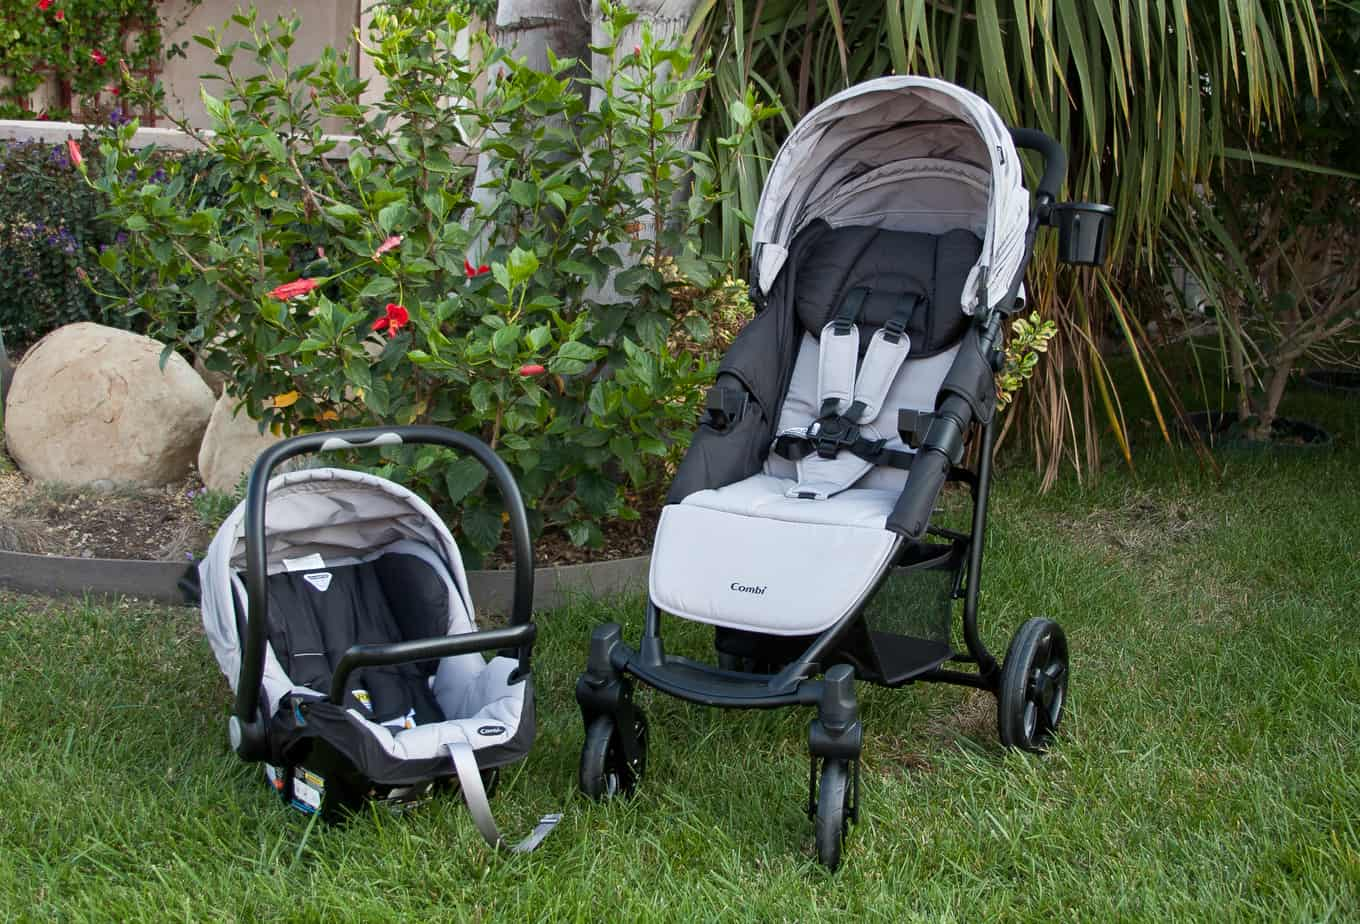 Combi Shuttle Travel System Review - Thrifty Nifty Mommy